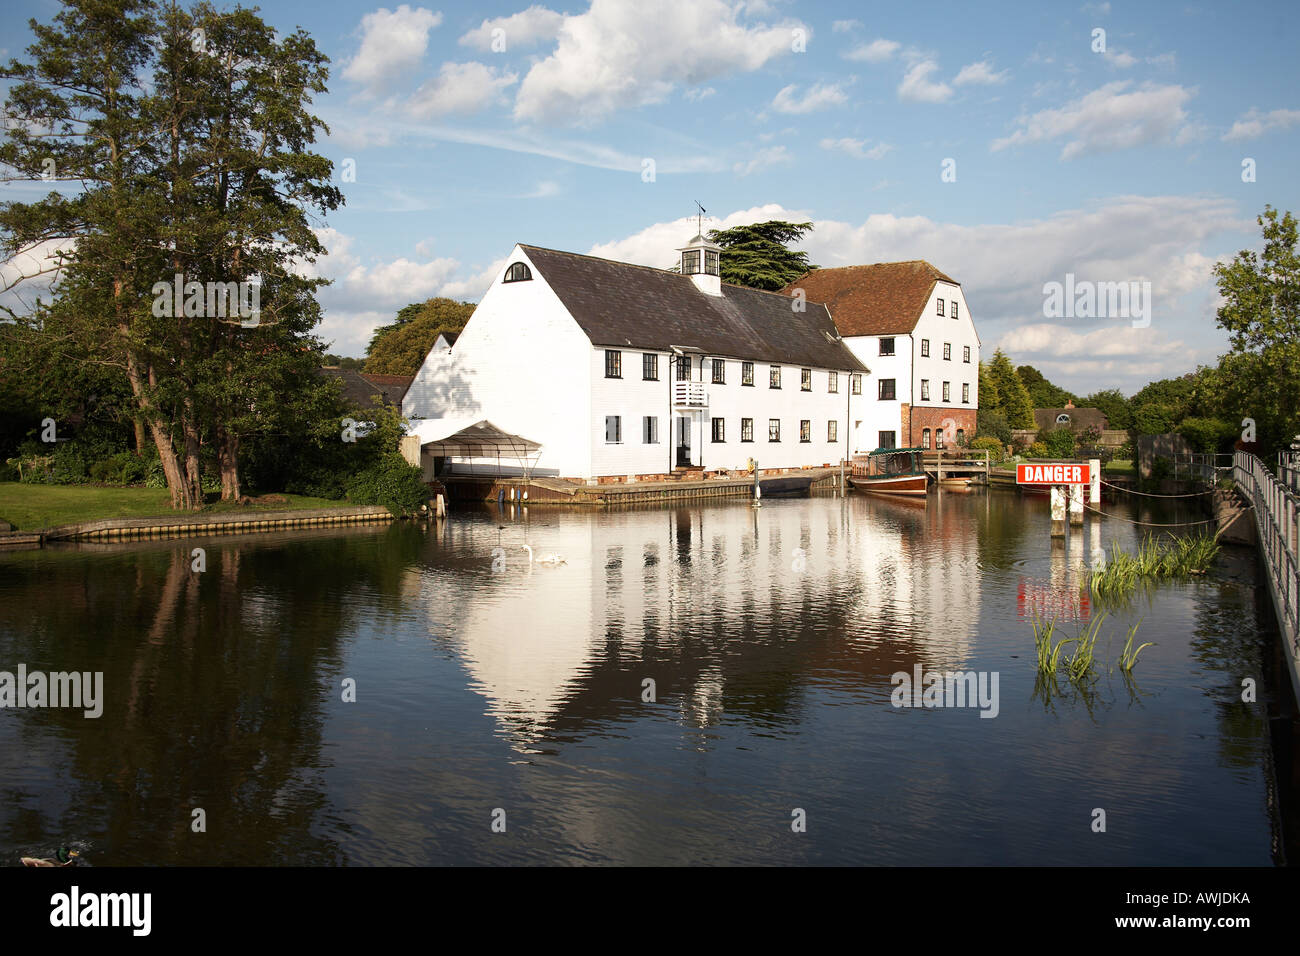 Hambleden Mill with weather vain on wier near Henley on Thames on River Thames - Stock Image